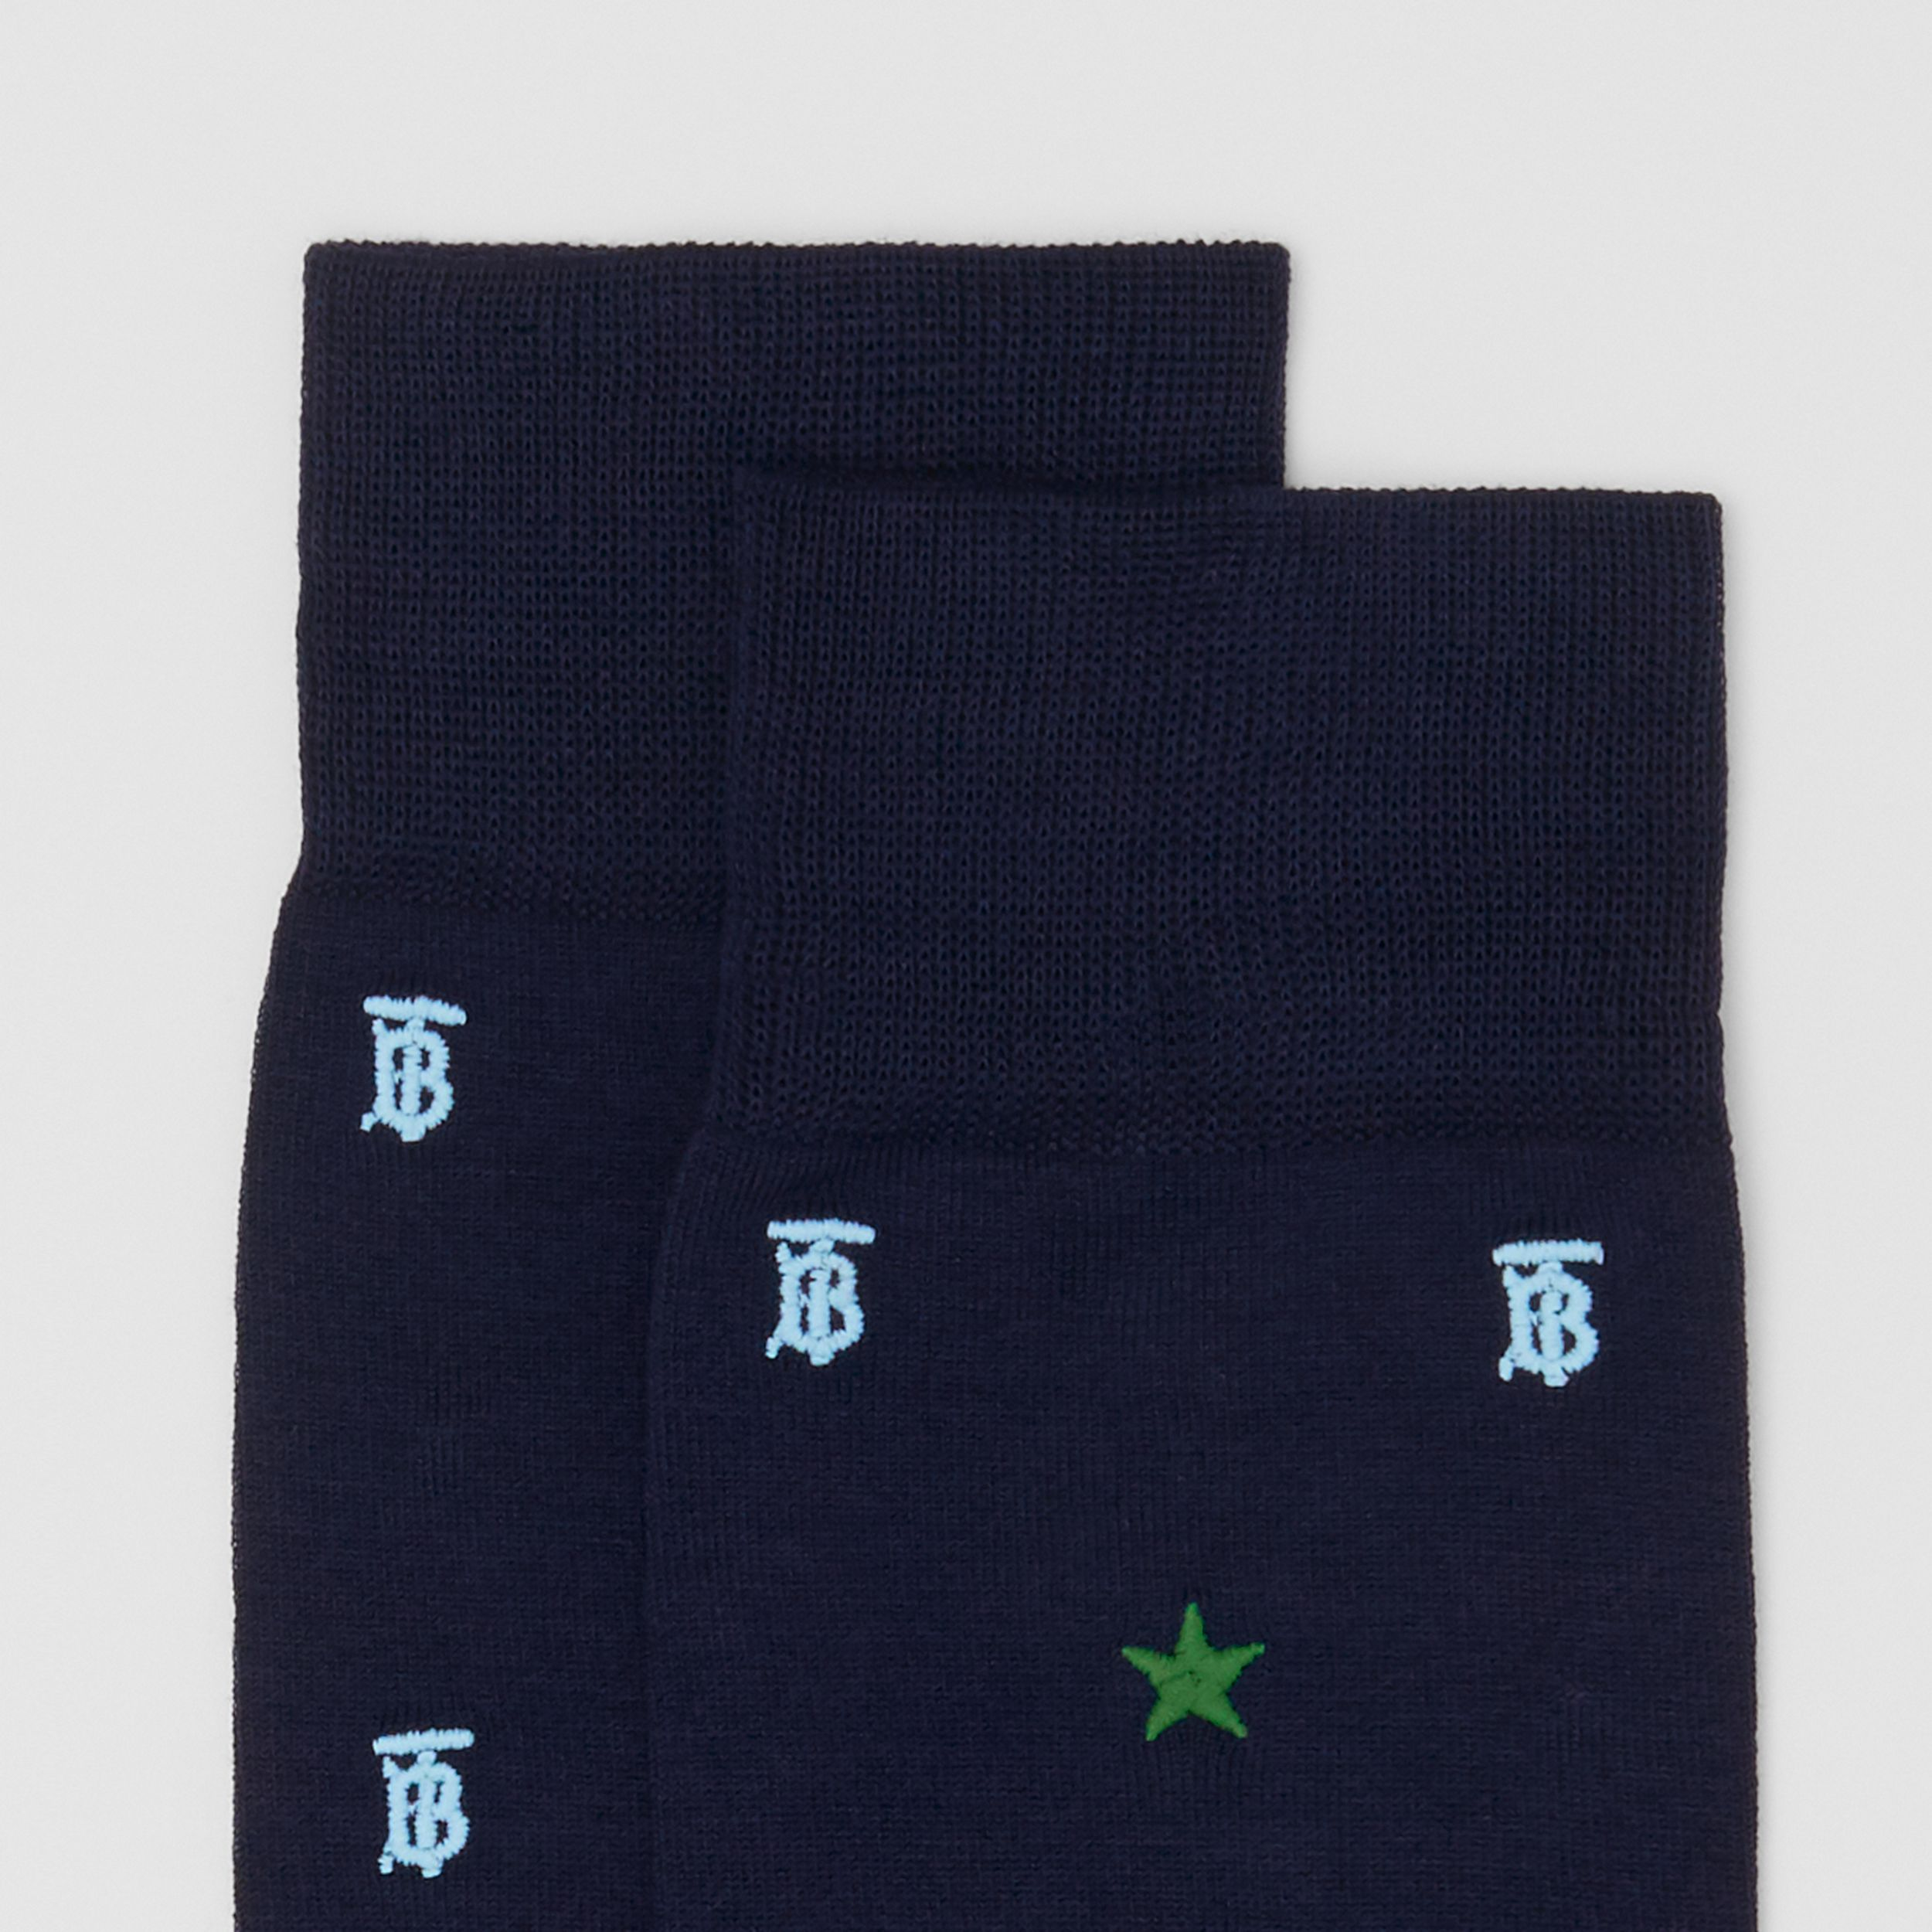 Star and Monogram Motif Cotton Blend Socks in Navy | Burberry Singapore - 2